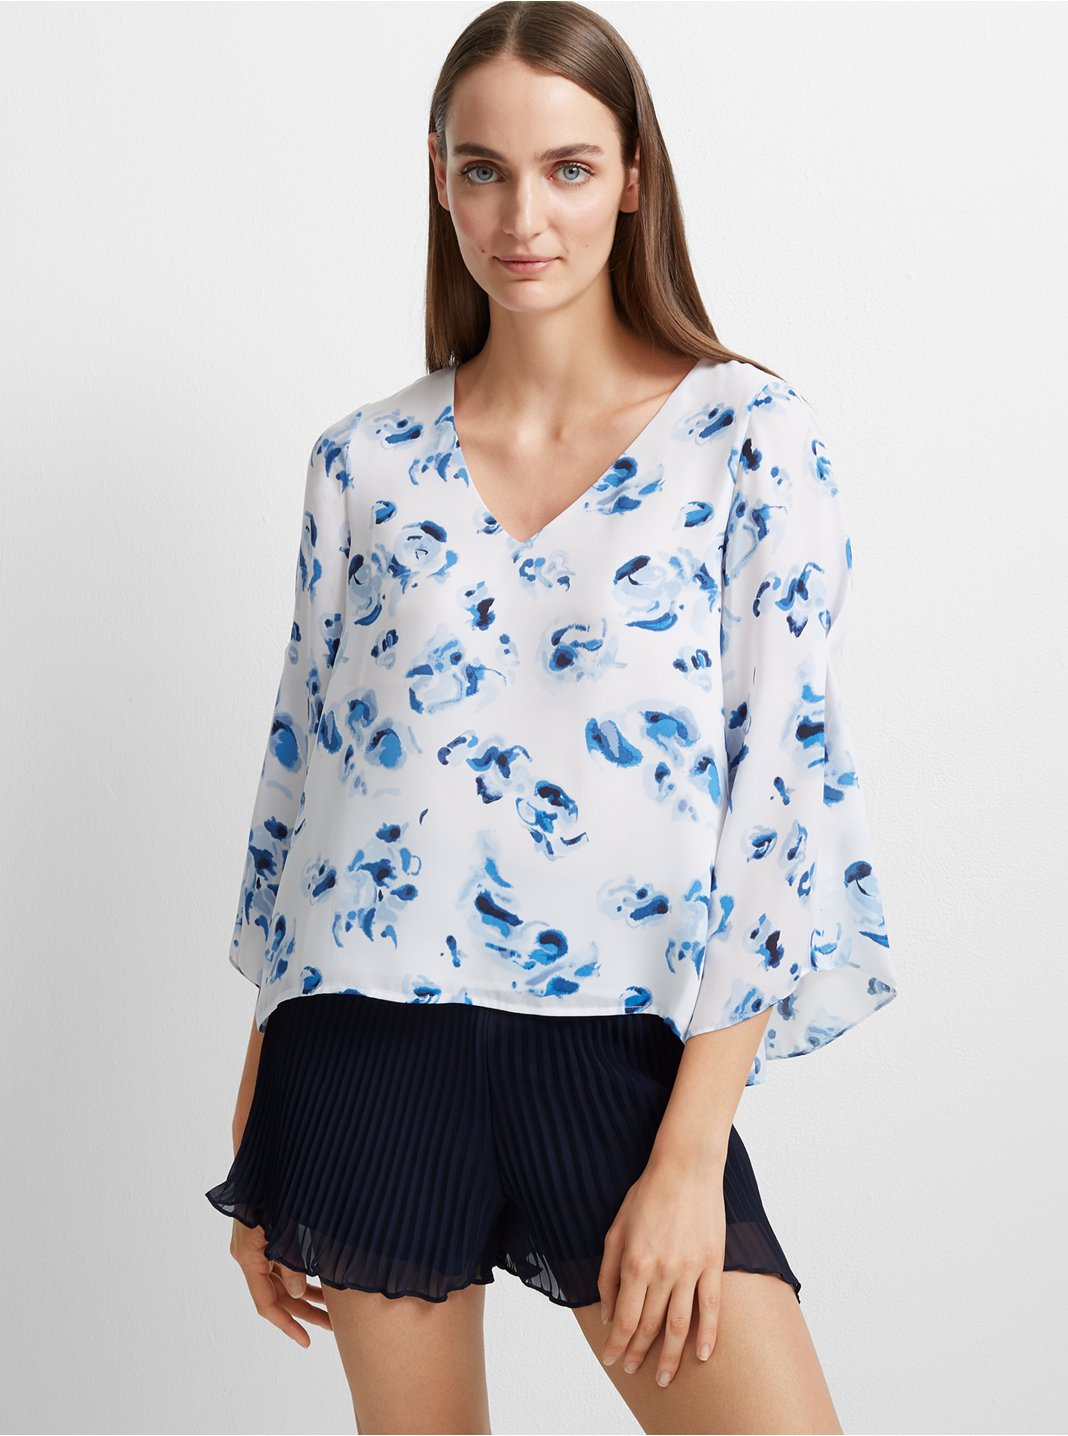 Orie Floral Top